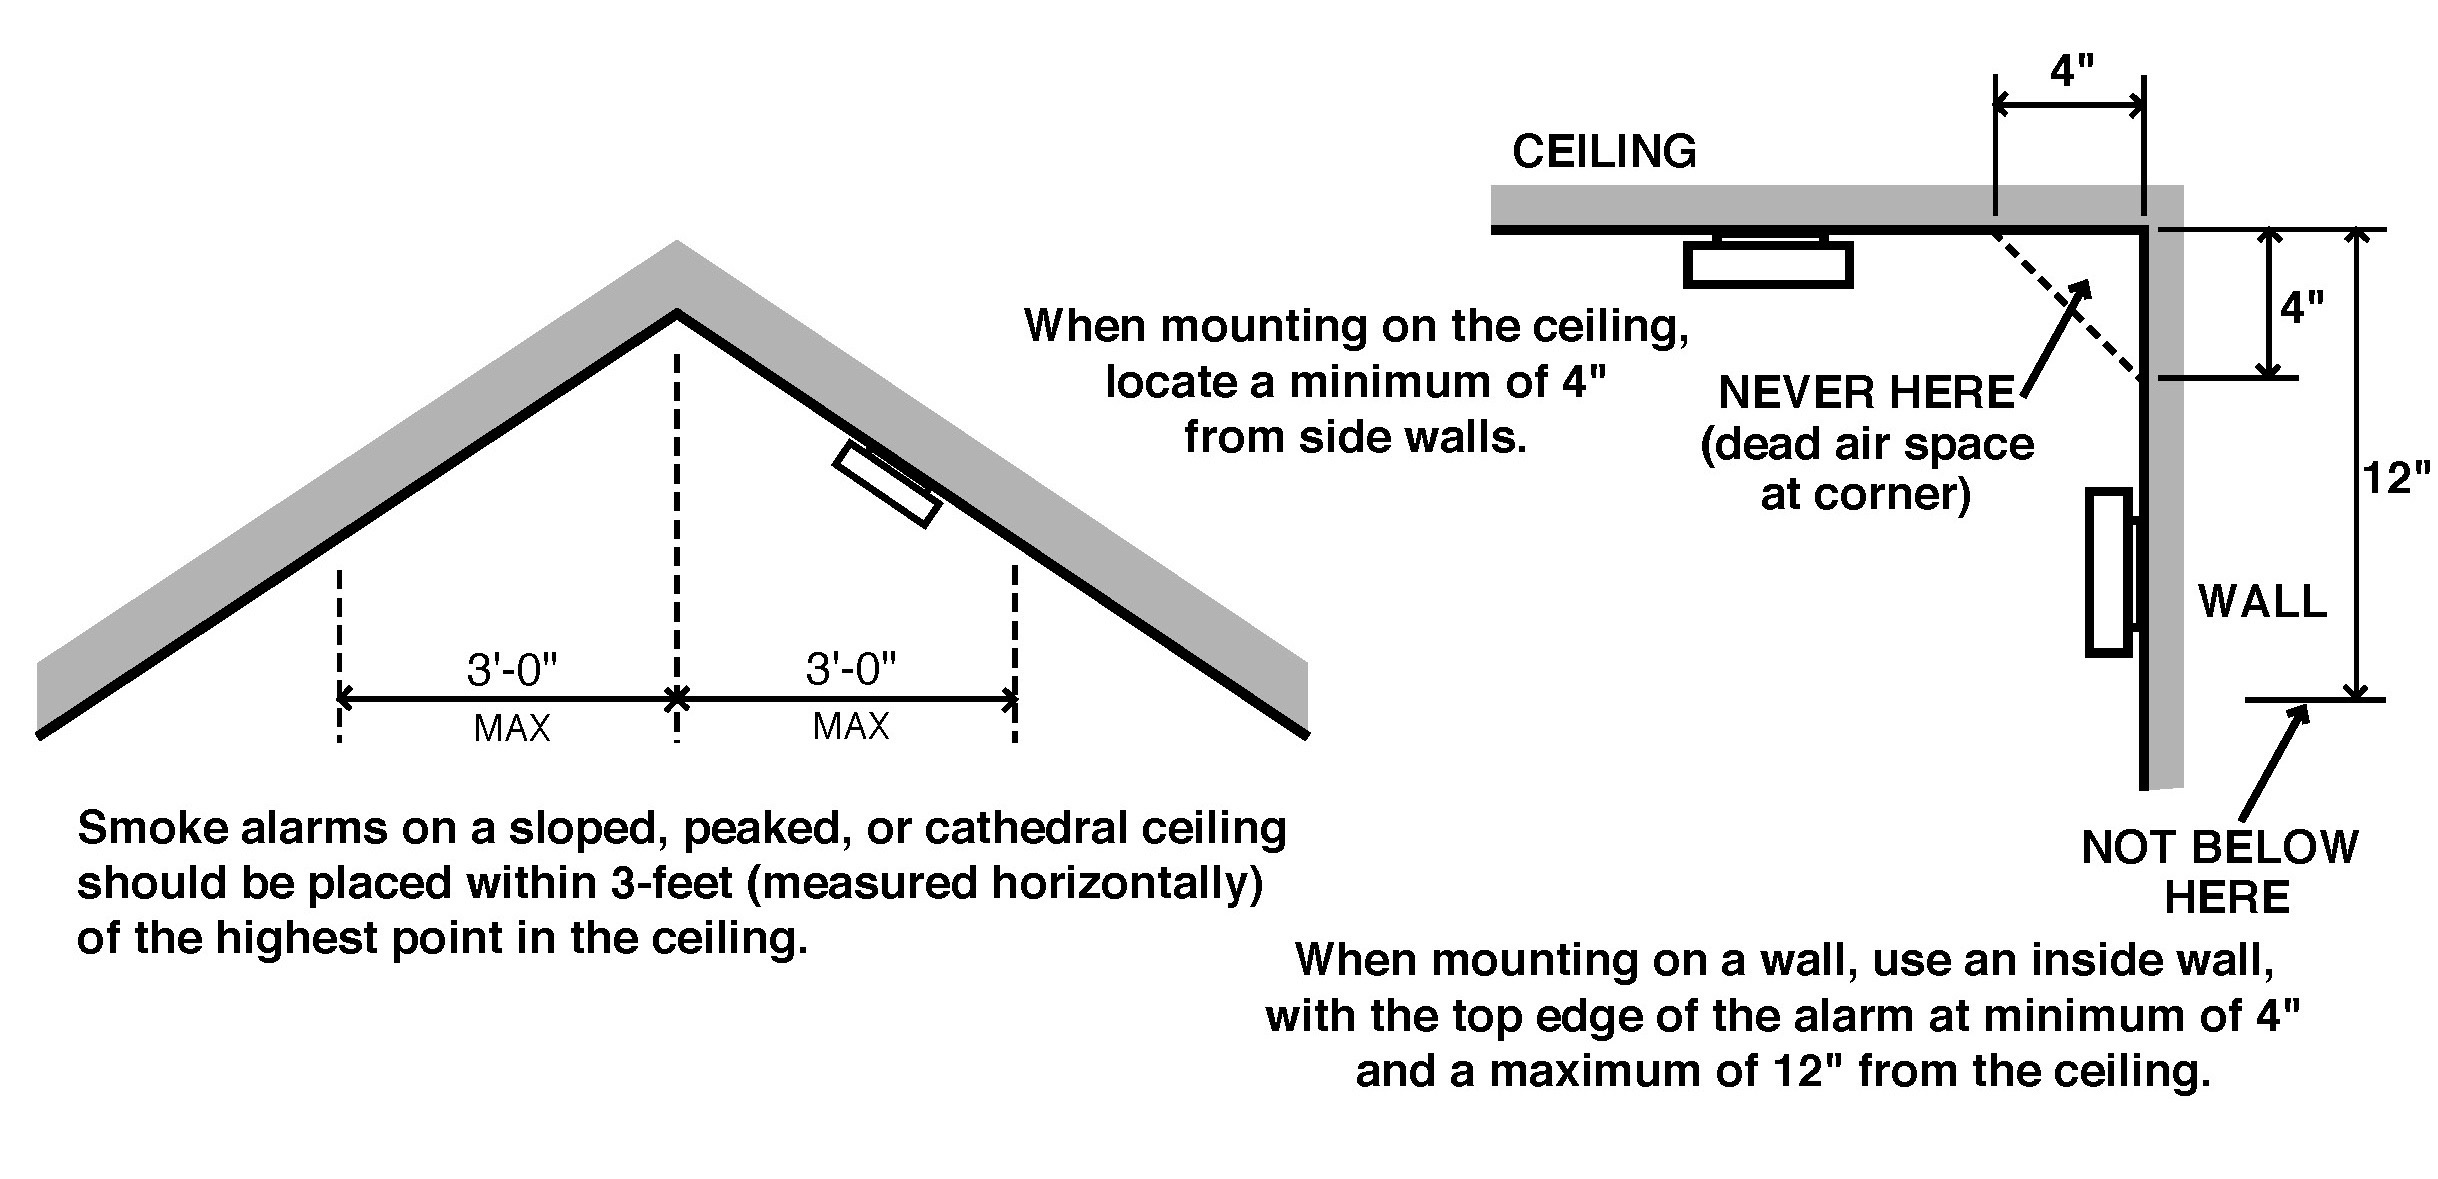 What Is The Minimum Height For Placement Of A Co Alarm Carbon